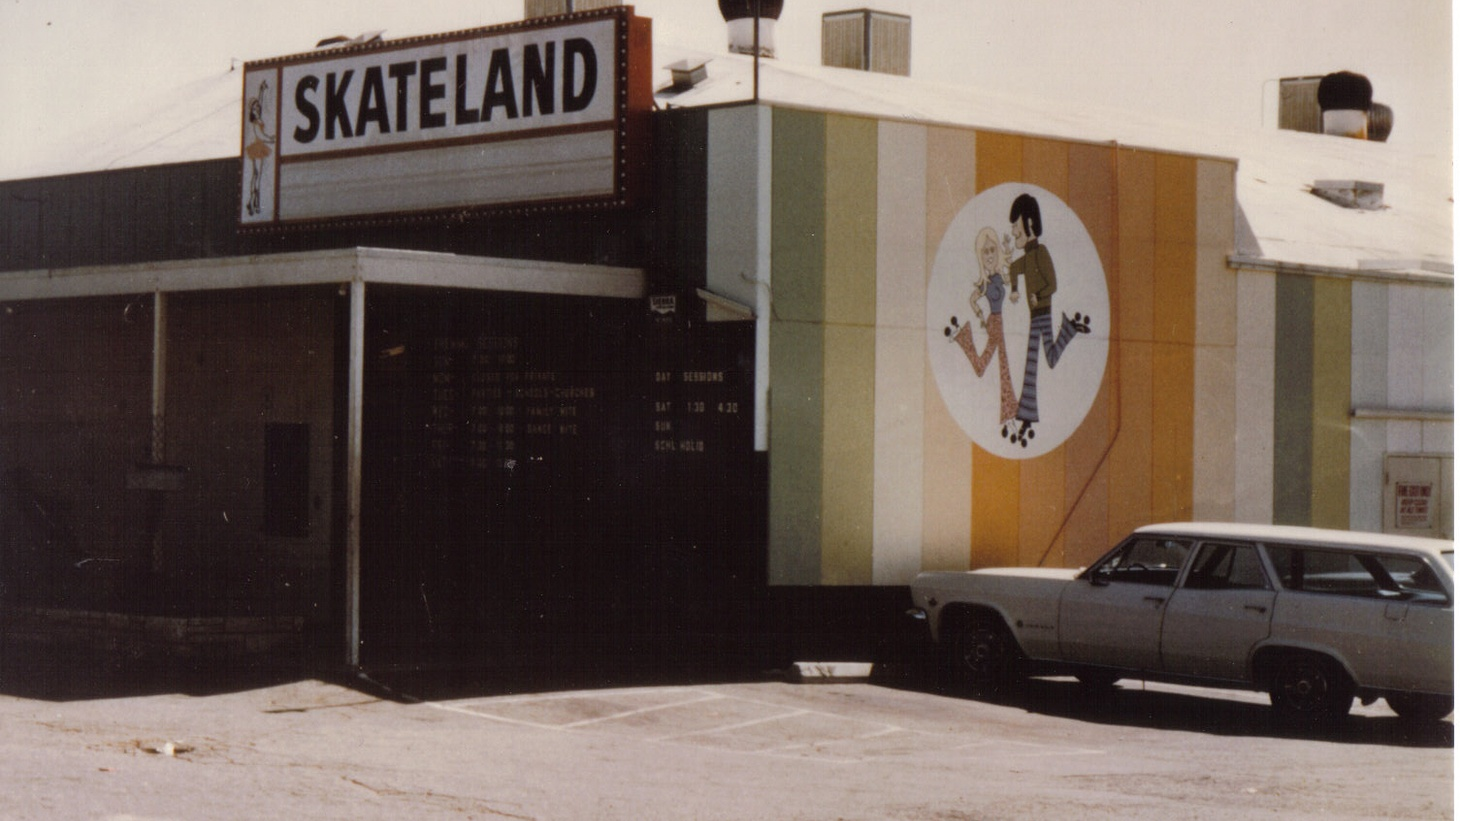 The exterior of Skateland in 1975. Hope of the Valley, a service provider for unhoused people, aims to turn this rink into a shelter by November 2021 — with 100 beds, plus case managers, storage space, mental health services, and recovery programs on-site.